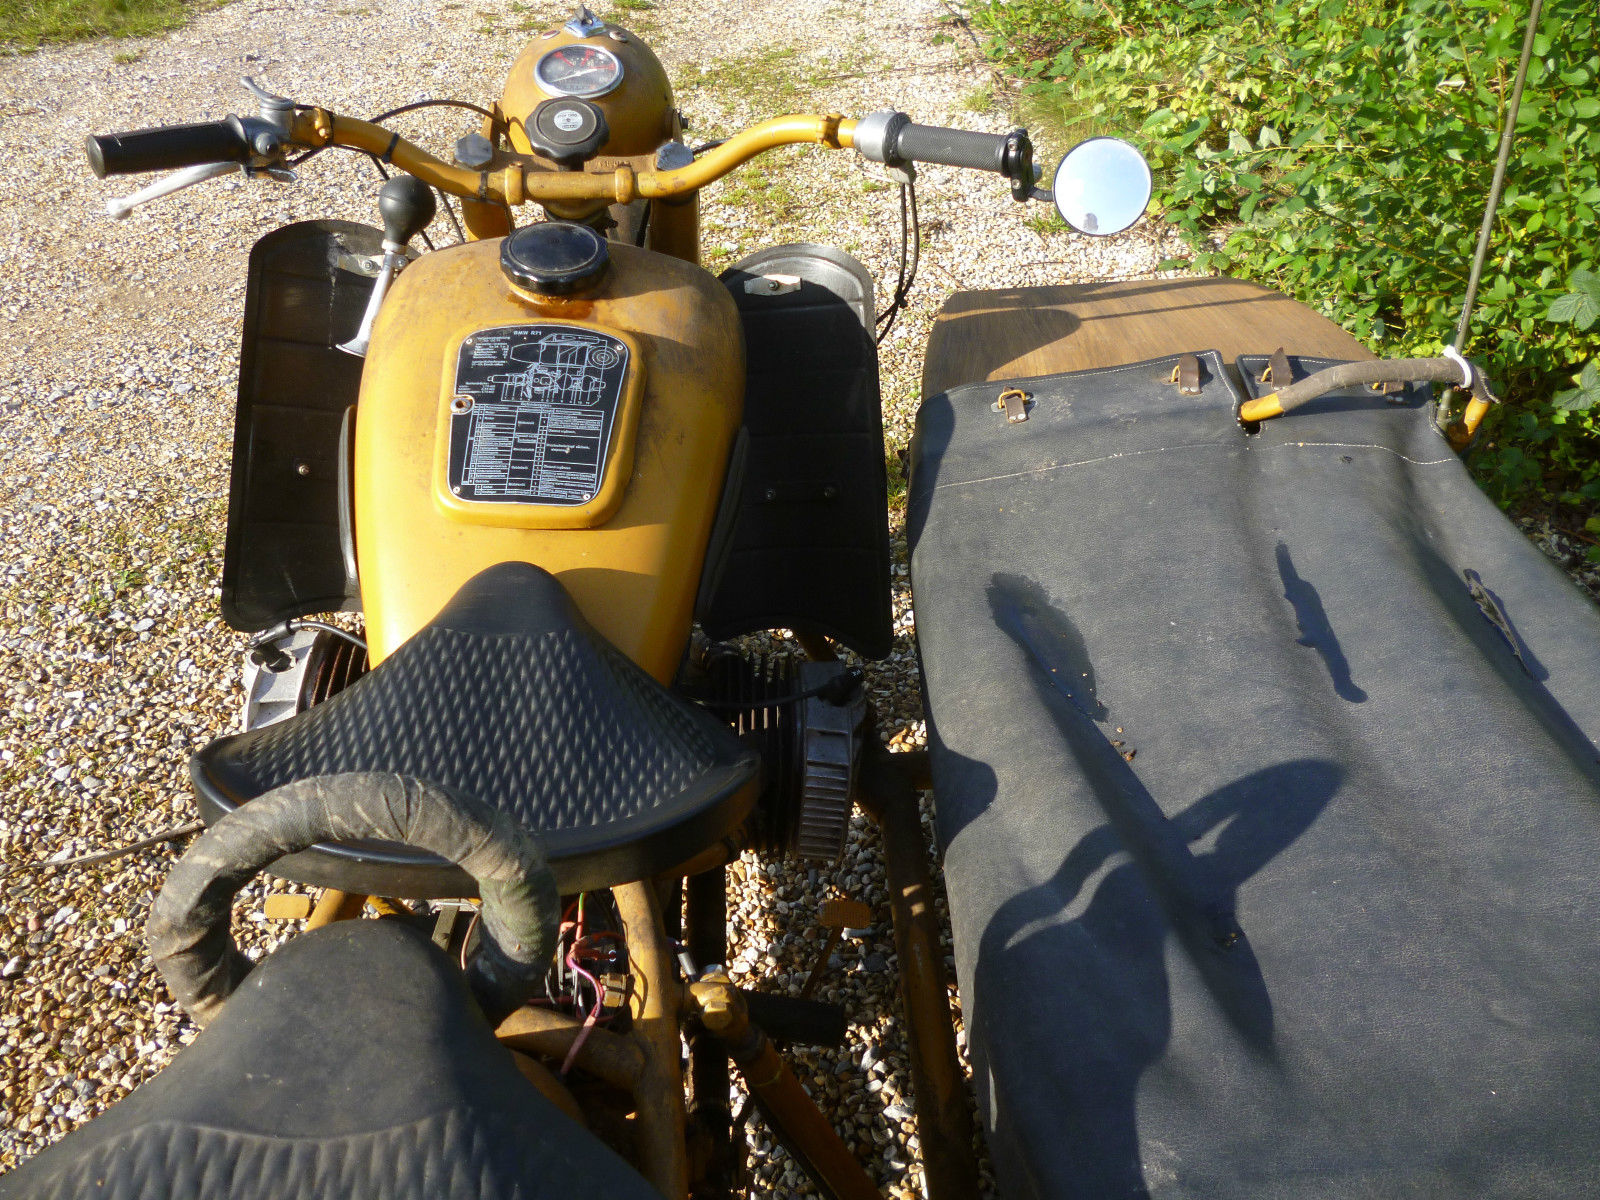 Ural K750 Sidecar Outfit 1962 Tax Exempt New Mot Not Cossackbmw Wiring Diagram Dnepr